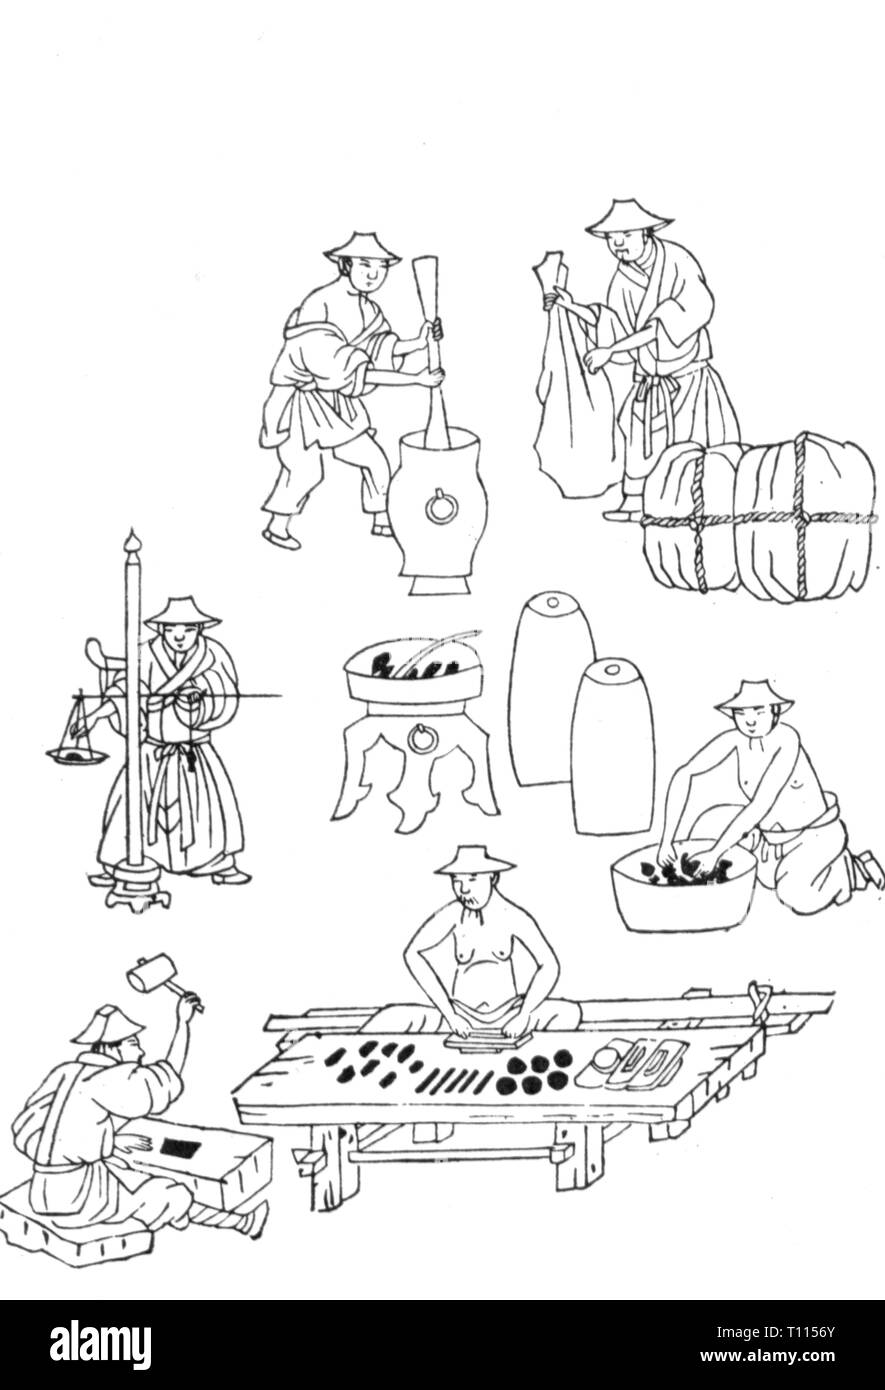 industry, stationery, ink, fabrication of Chinese ink, mixing of the ink, woodcut, 1573 - 1619, Artist's Copyright has not to be cleared - Stock Image